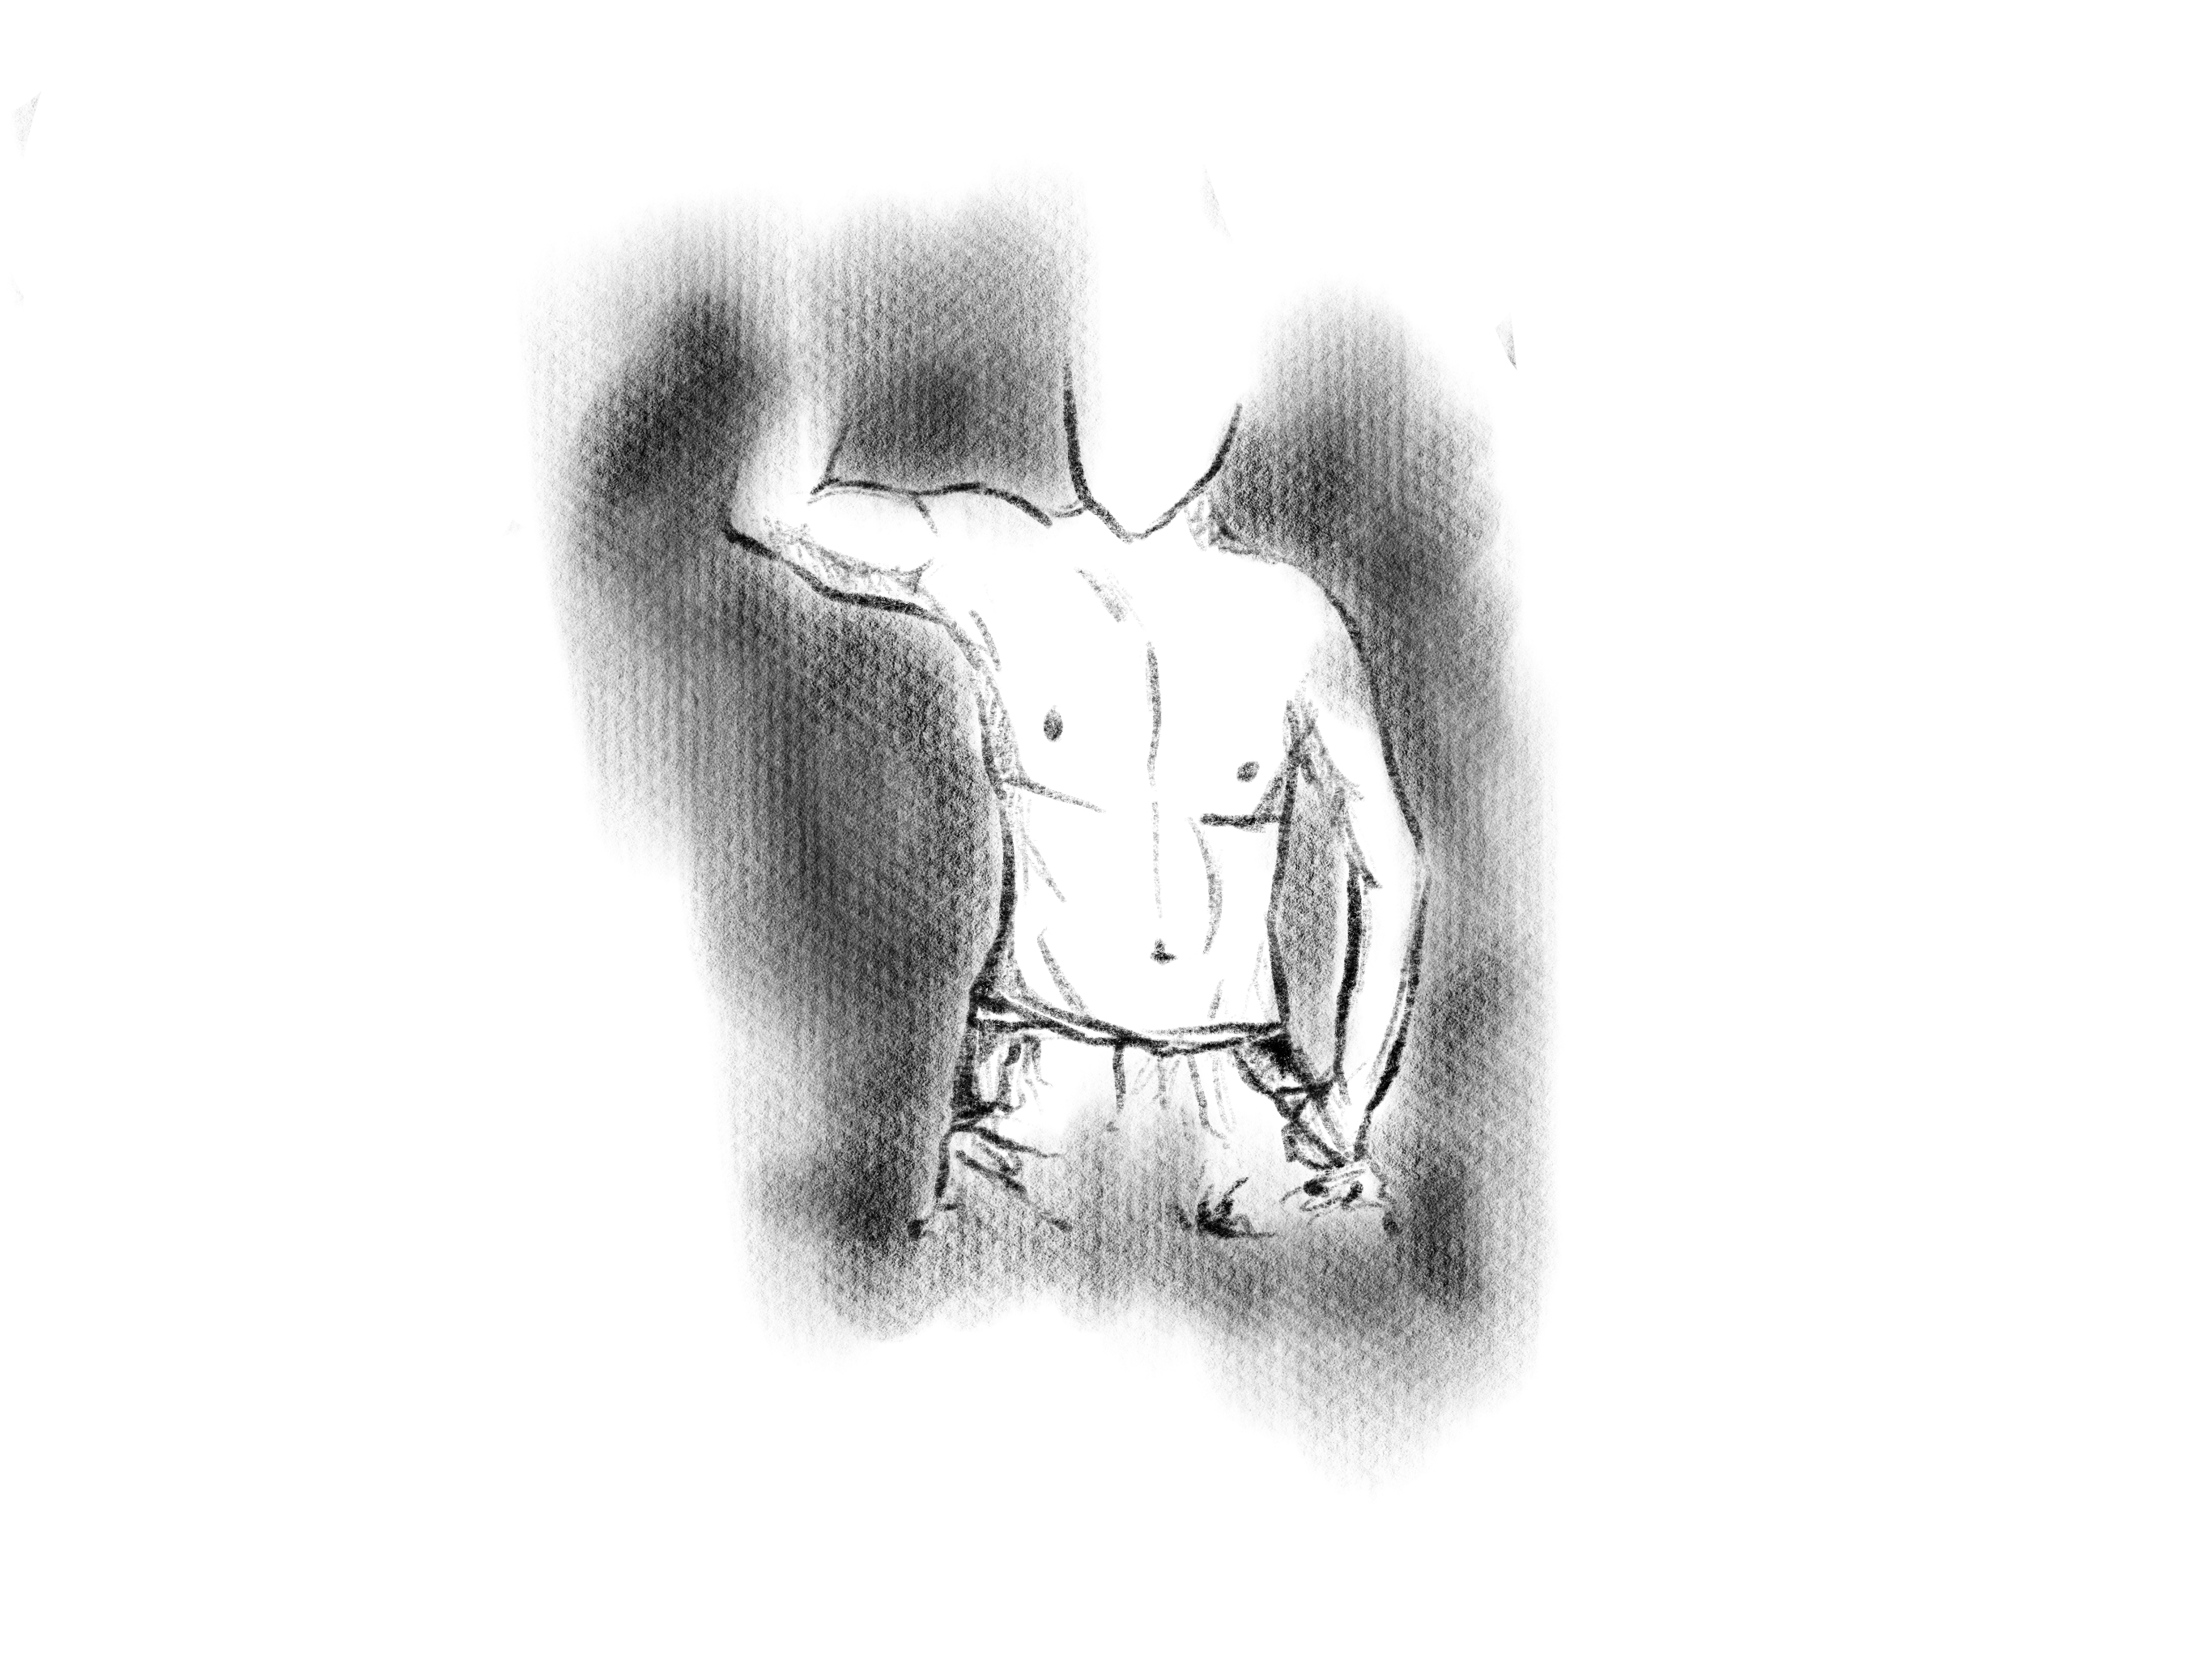 Black and white illustration of a man's chest